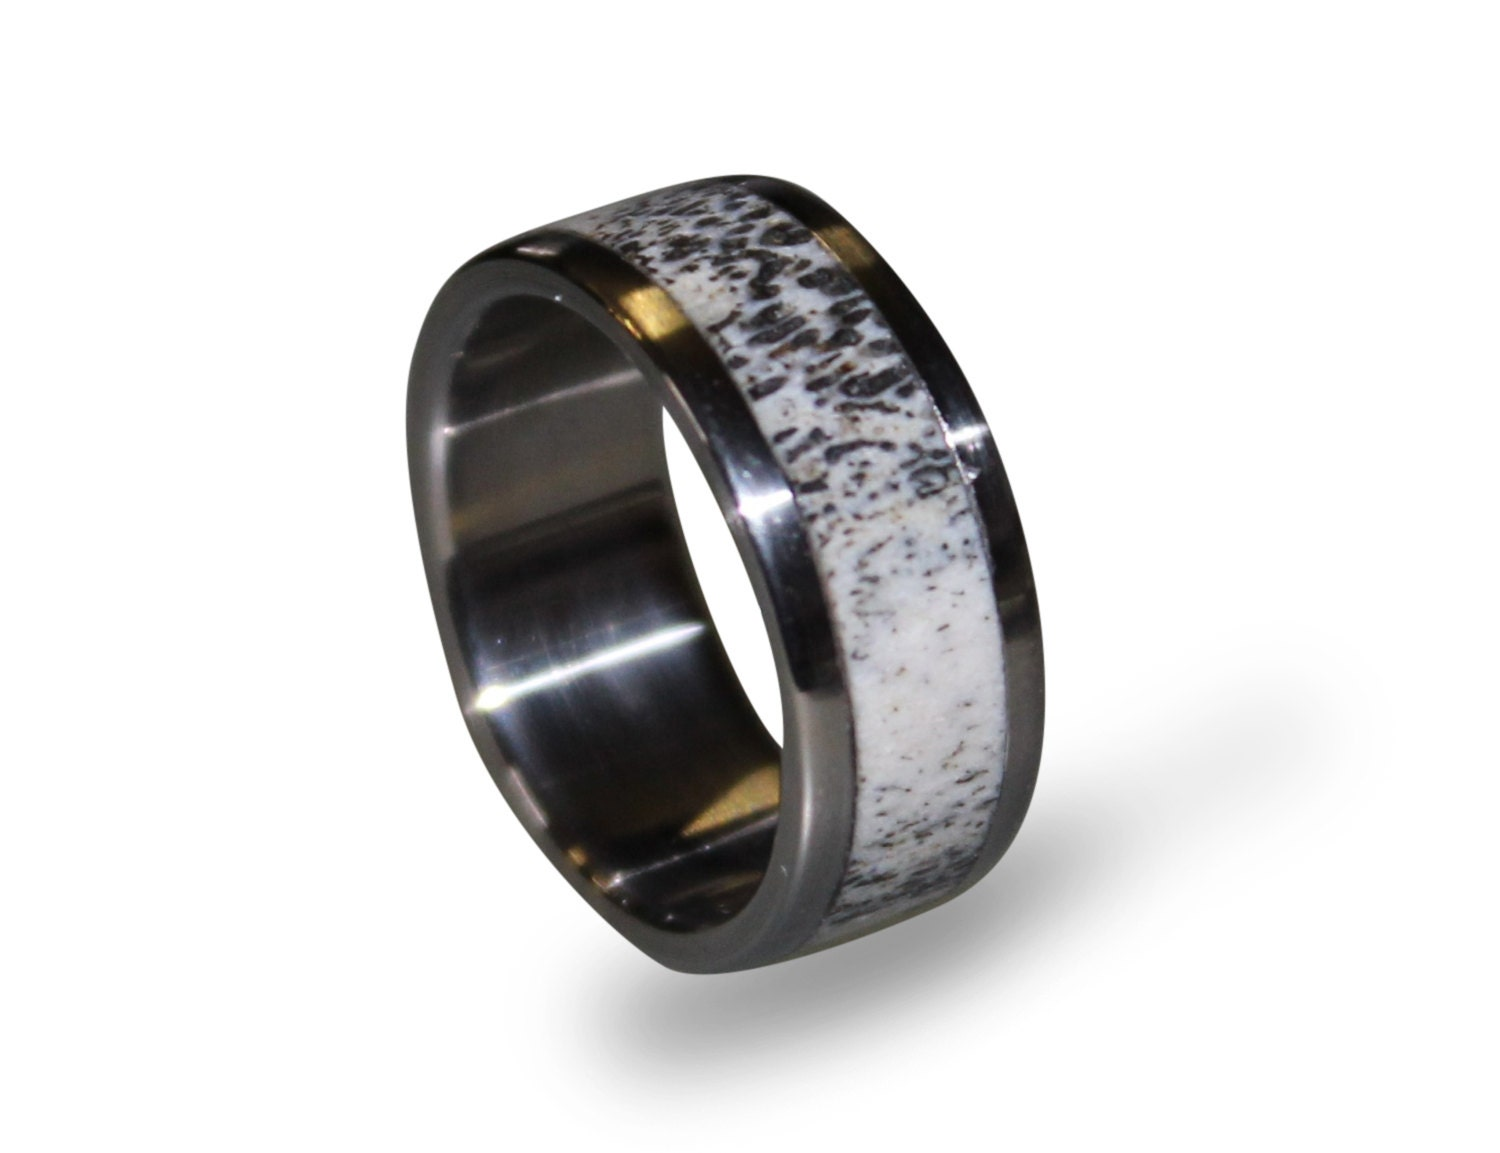 Mens Wedding Ring Titanium Wedding Band with Deer Antler